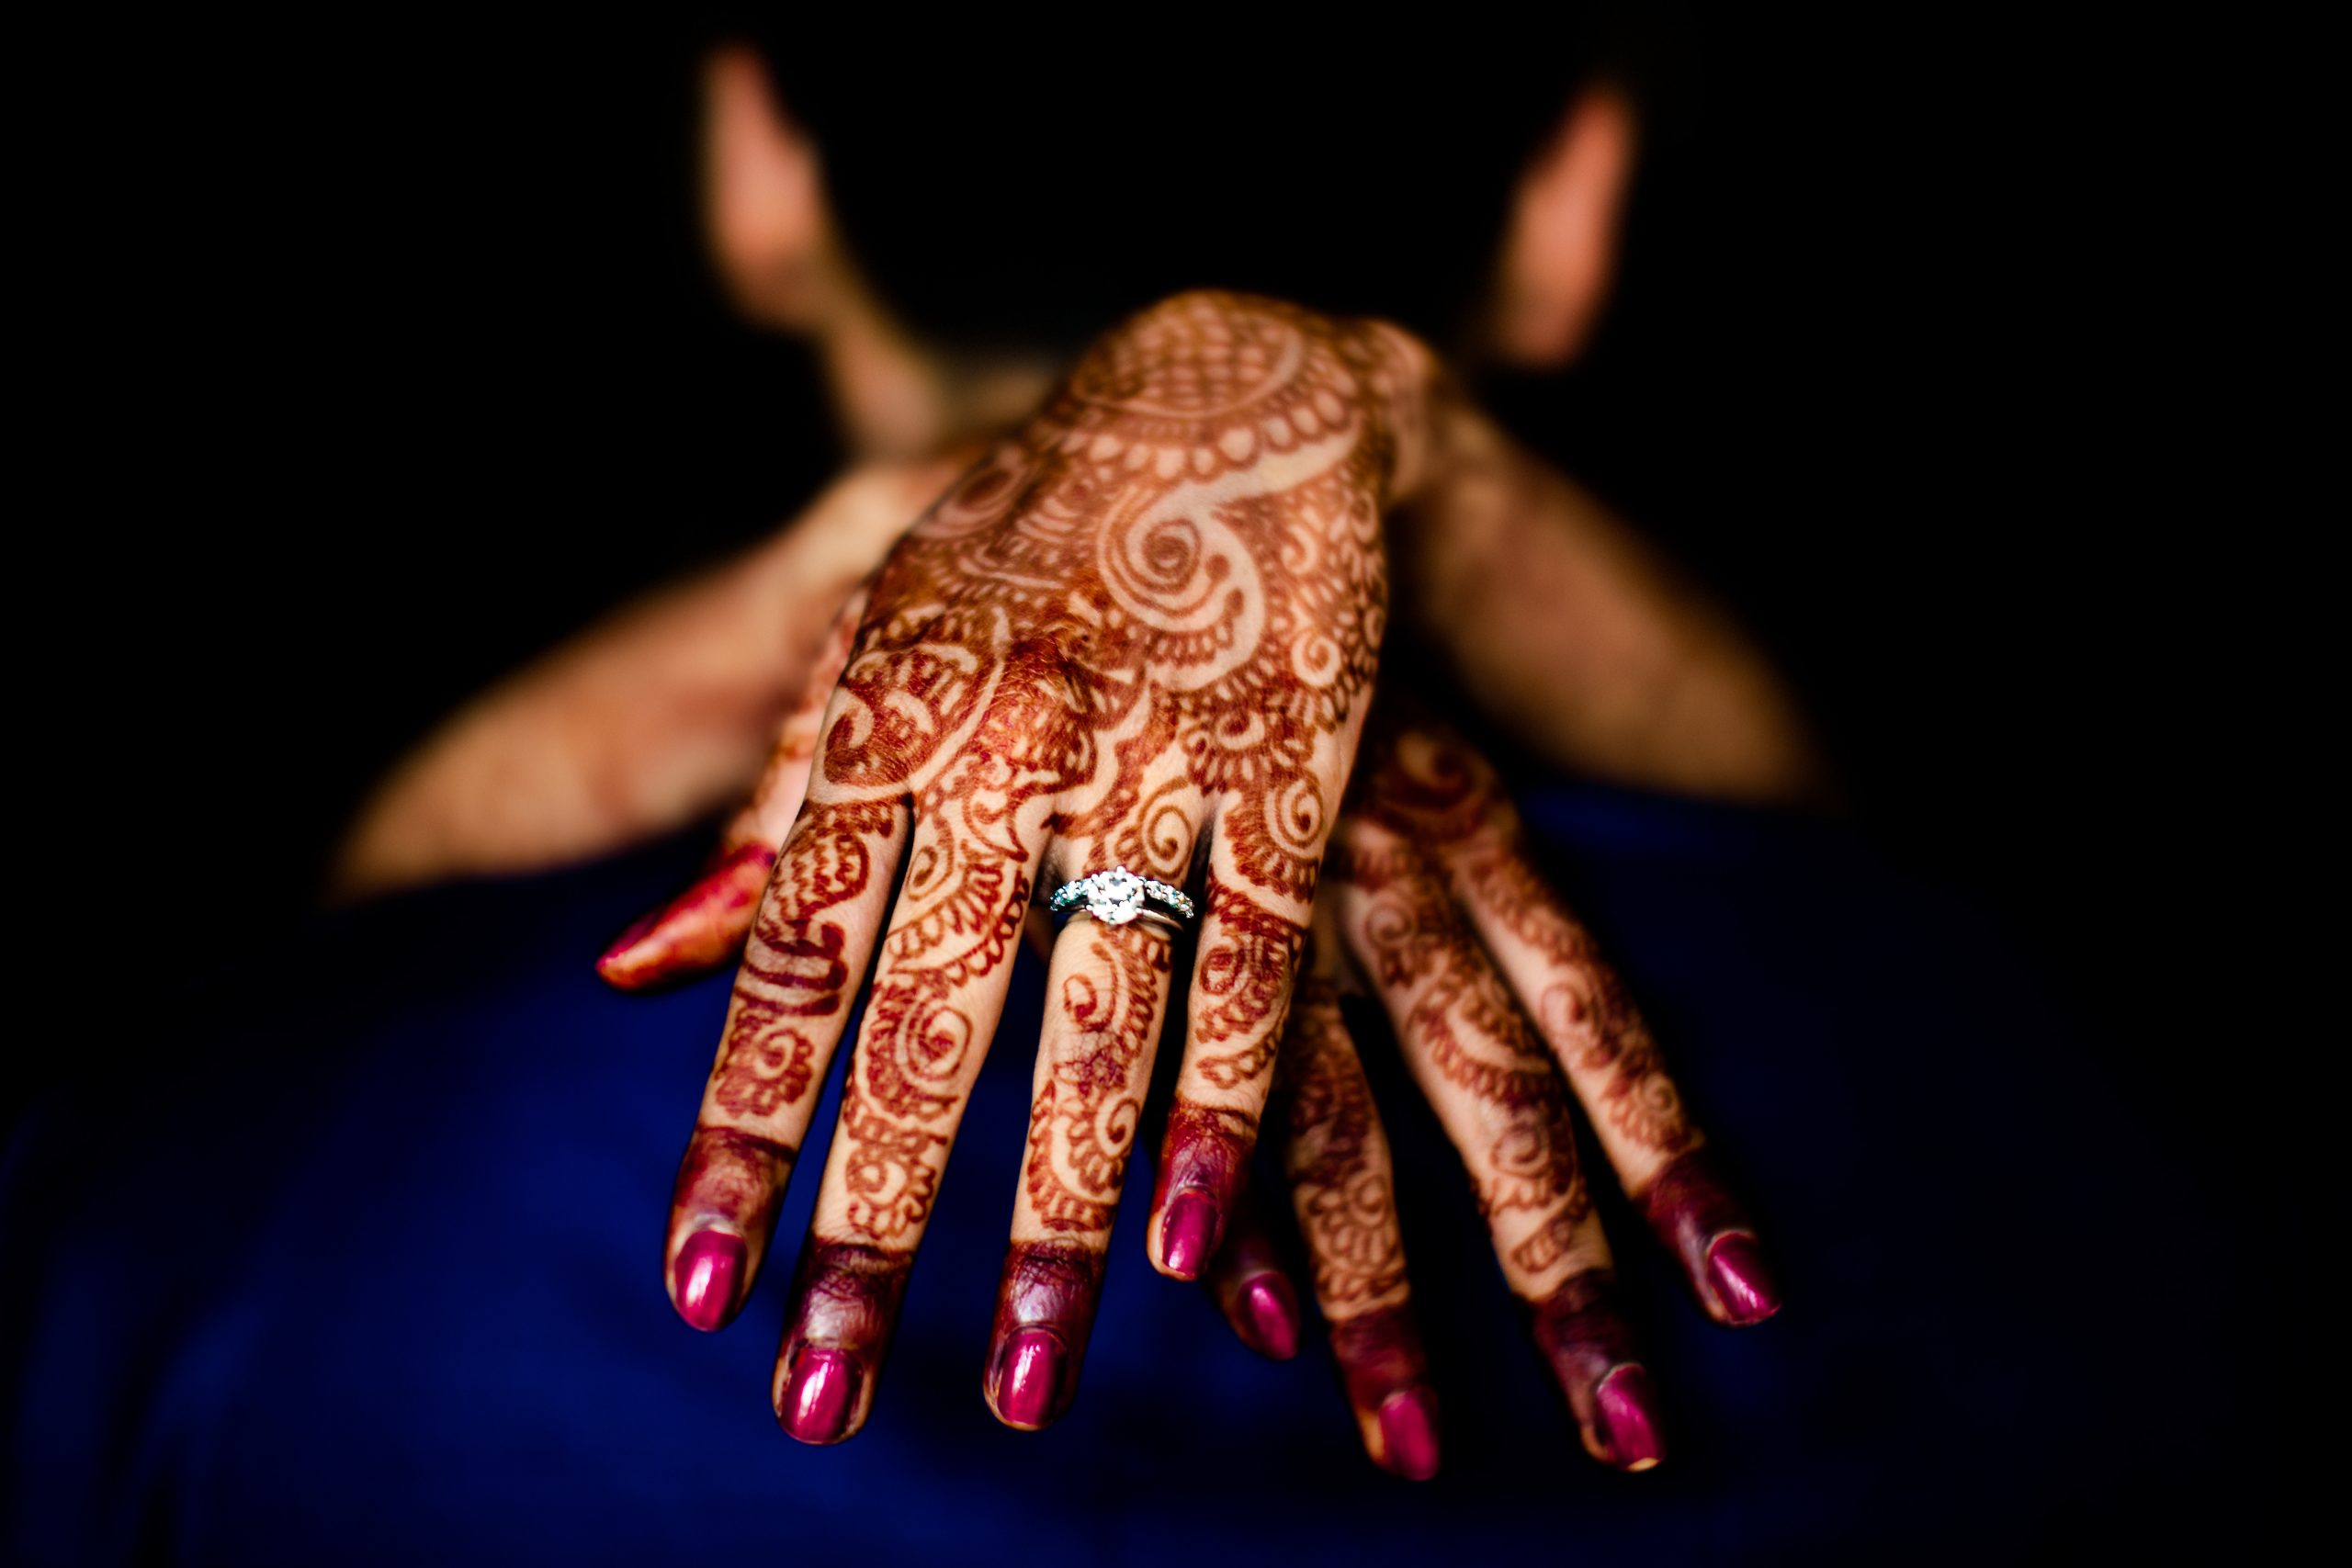 An bride's wedding ring on top of her mehndi hand art